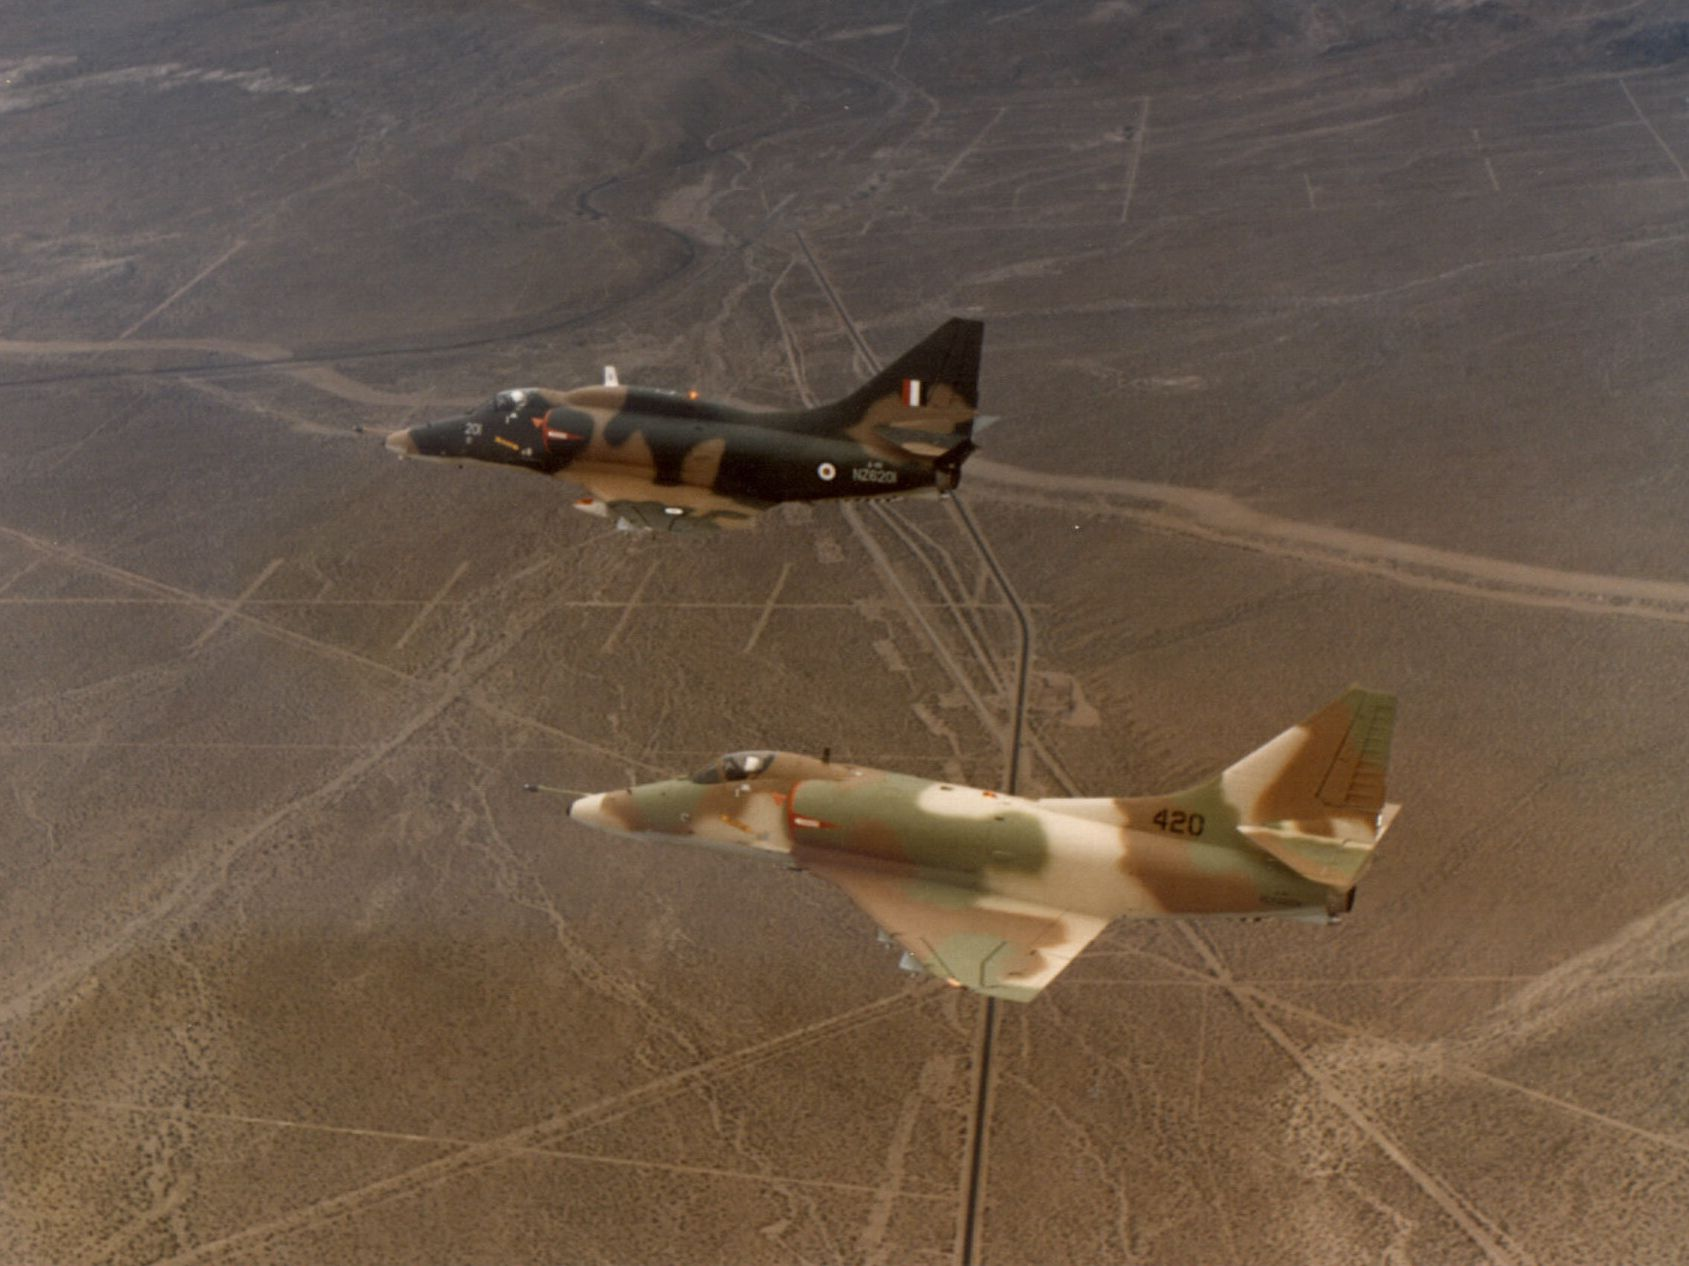 File:A-4H and A-4K Skyhawk in flight c1969.jpeg - Wikimedia Commons